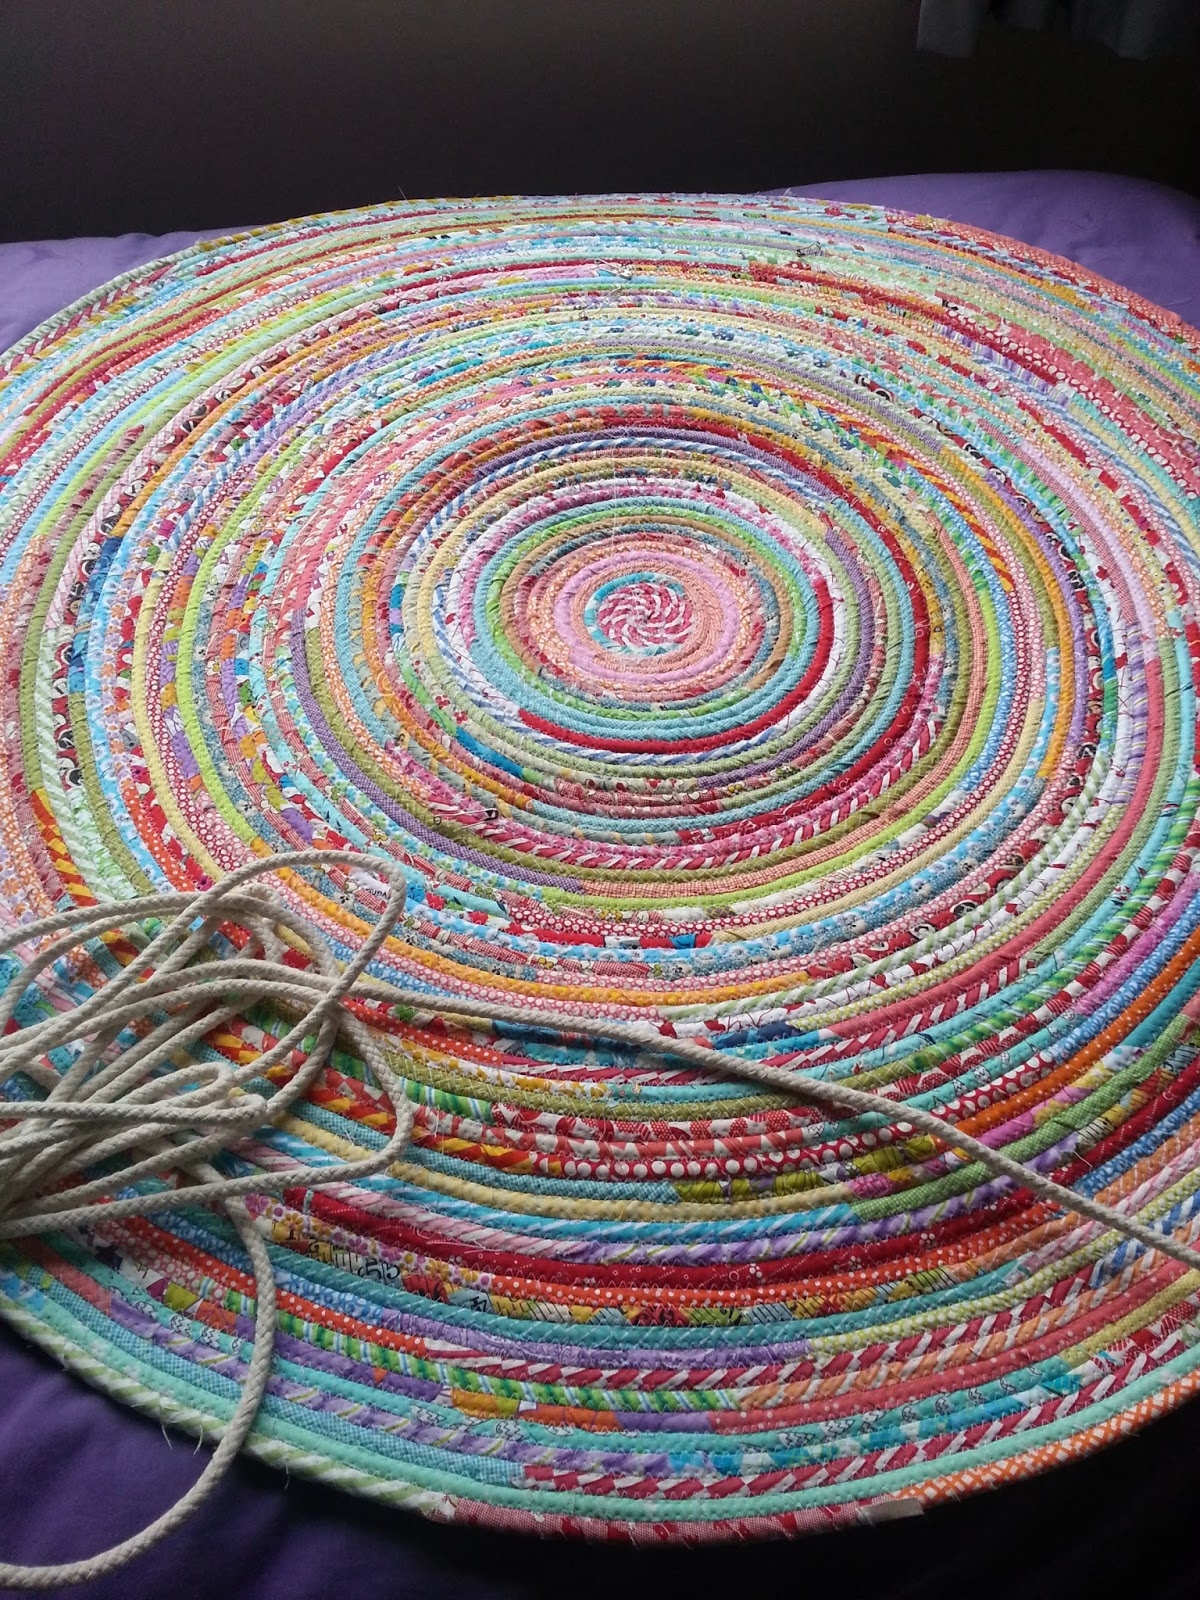 Ric Rac How To Sew A Fabric Rug Tutorial